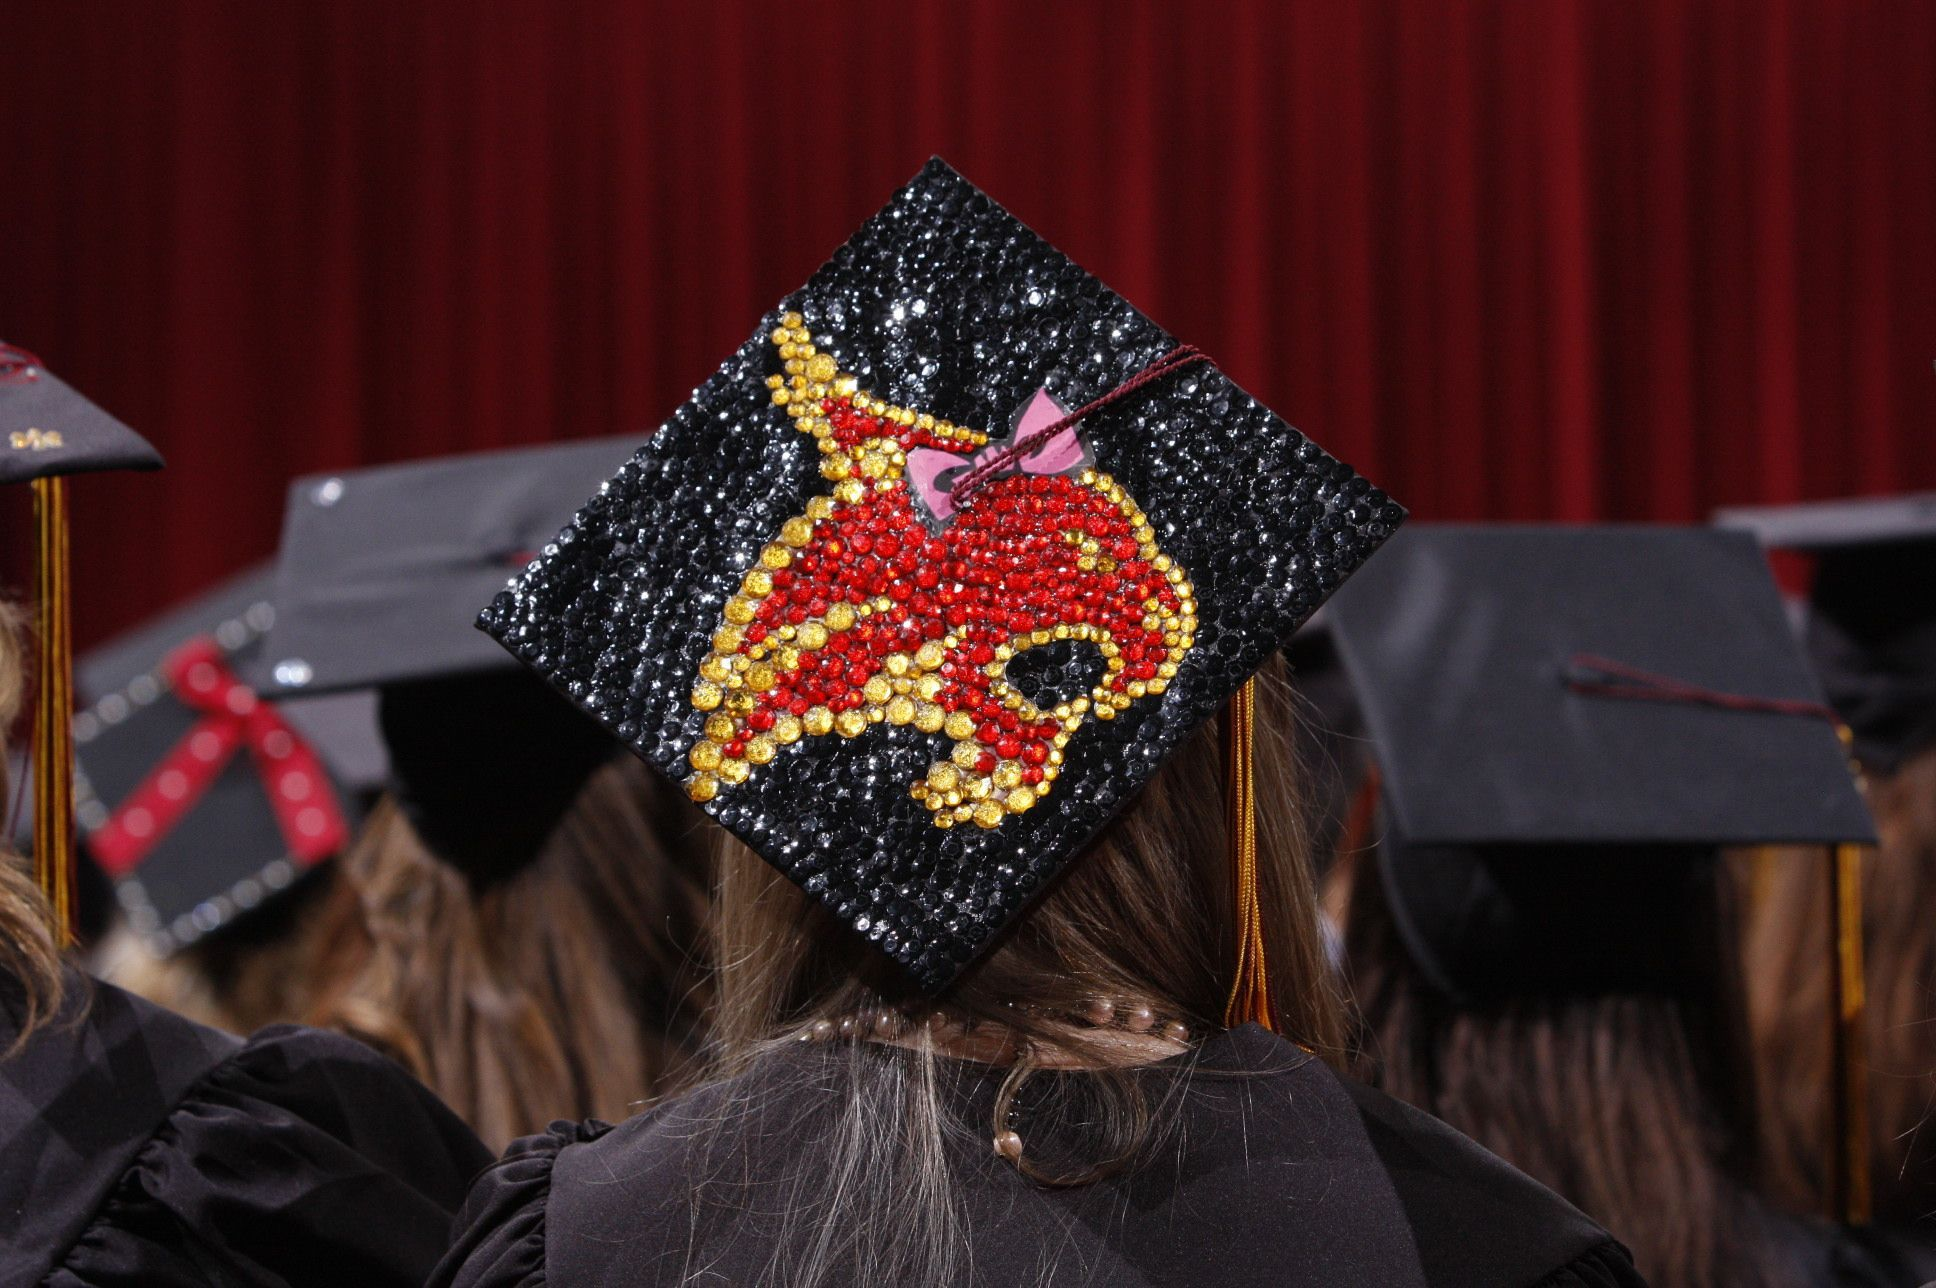 Congratulations To All Graudates And Many Wishes For The Road Ahead Txstategraduation2018 Graduat Graduation Cap Disney Graduation Cap University Graduation